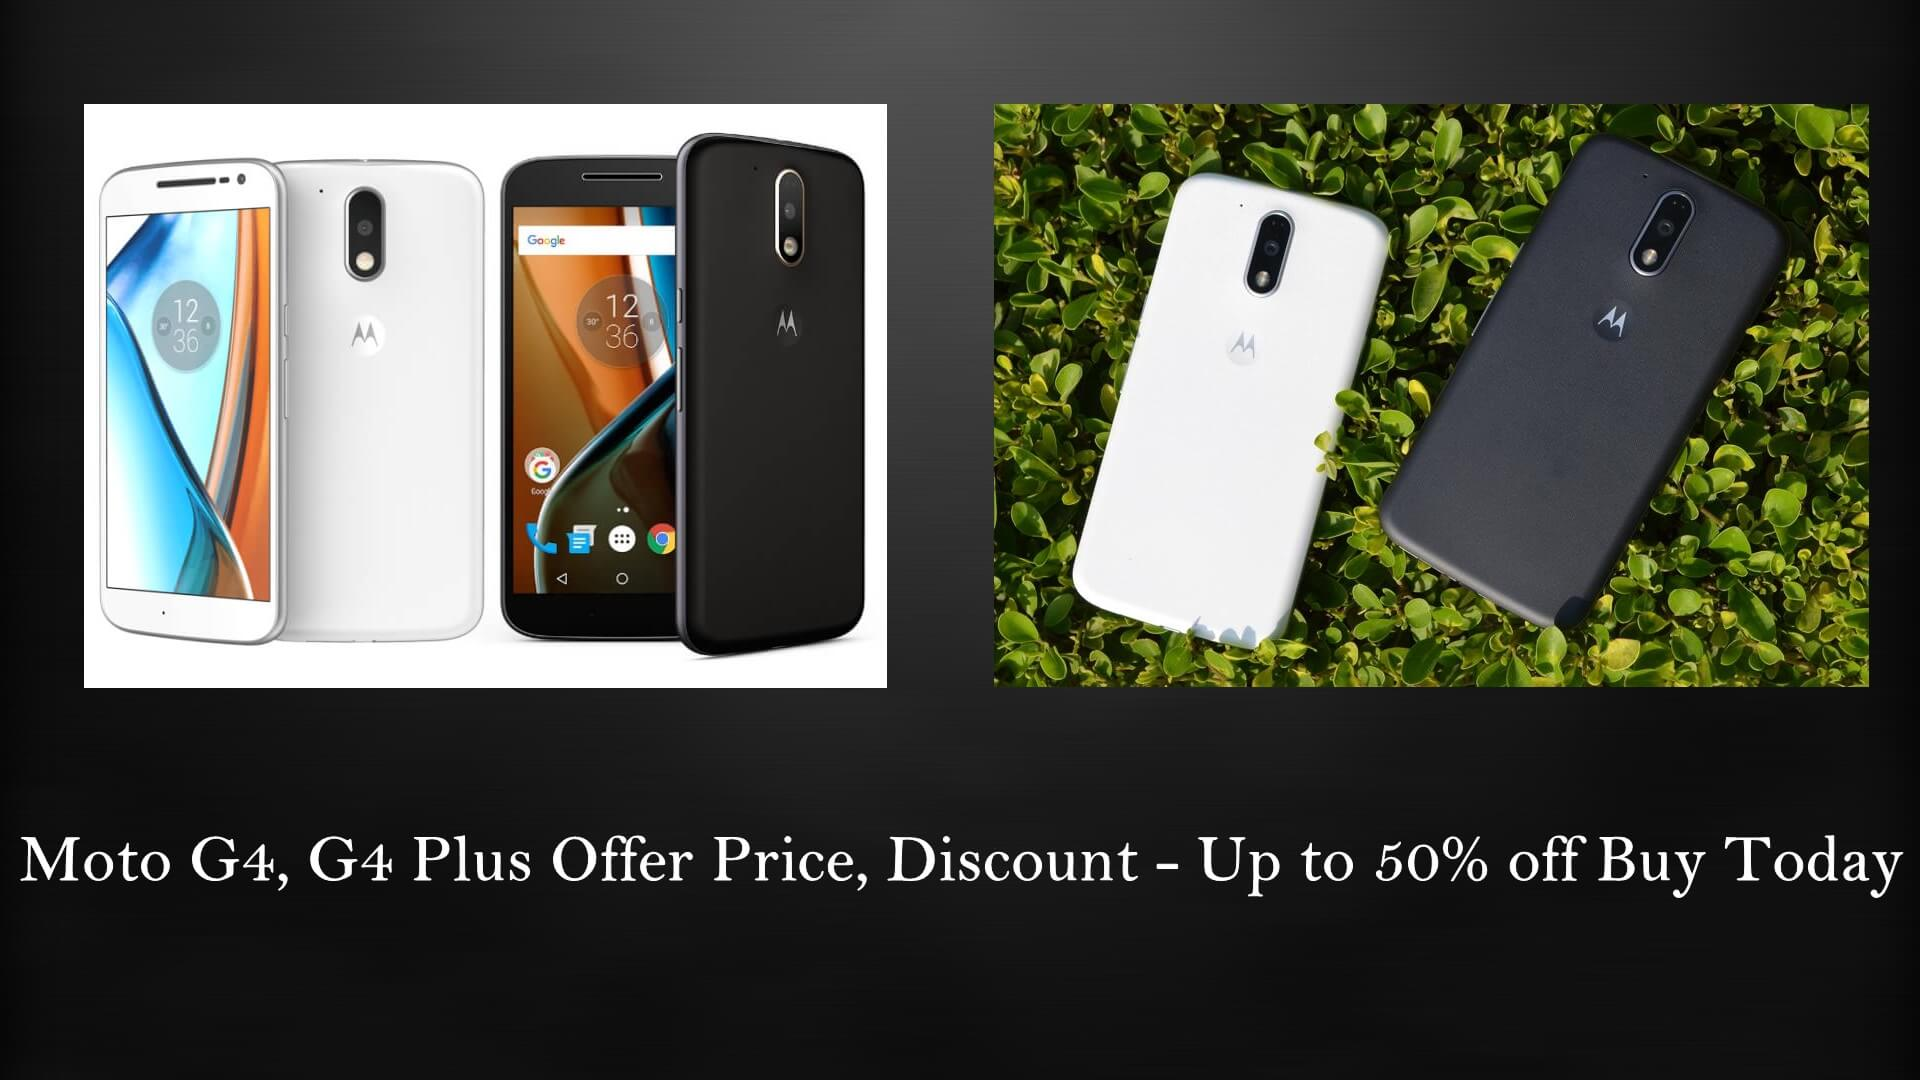 Moto G4, G4 Plus Offer Price, Discount - Up to 50% off Buy Today